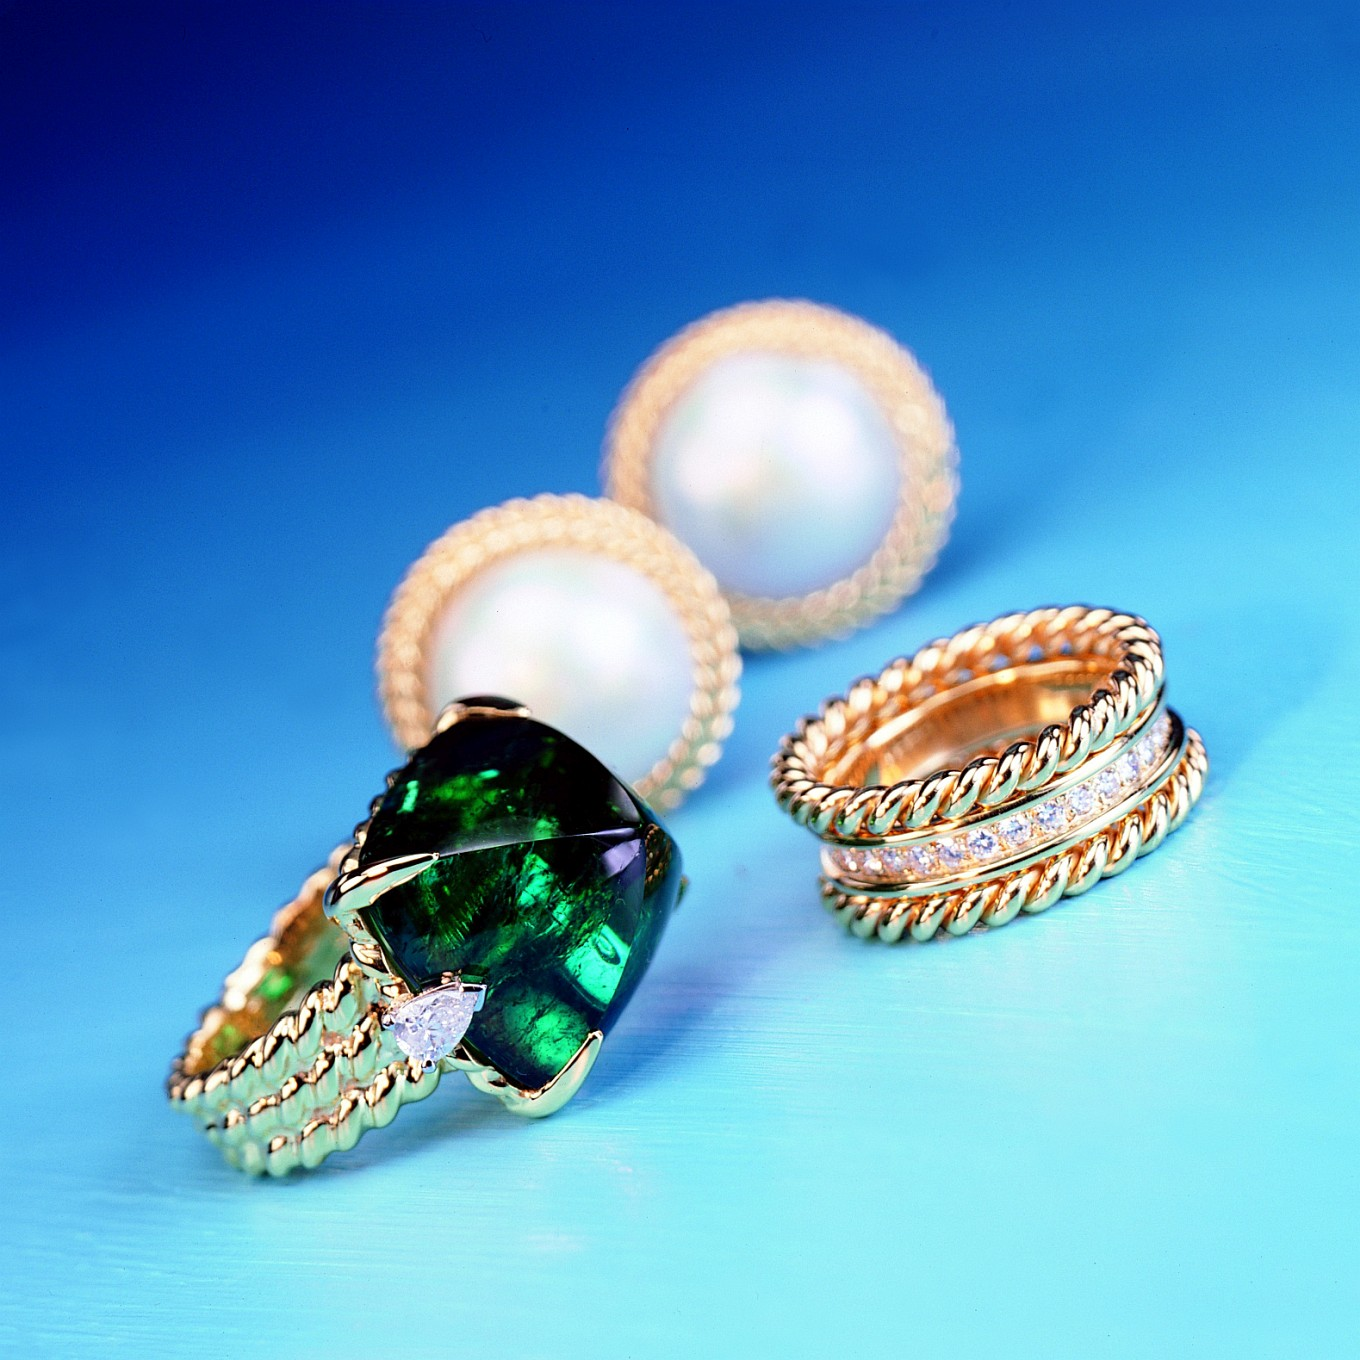 'BRAID' DESIGNS - GOLD BANDS, MABE PEARL EARRINGS & GREEN TOURMALINE RING